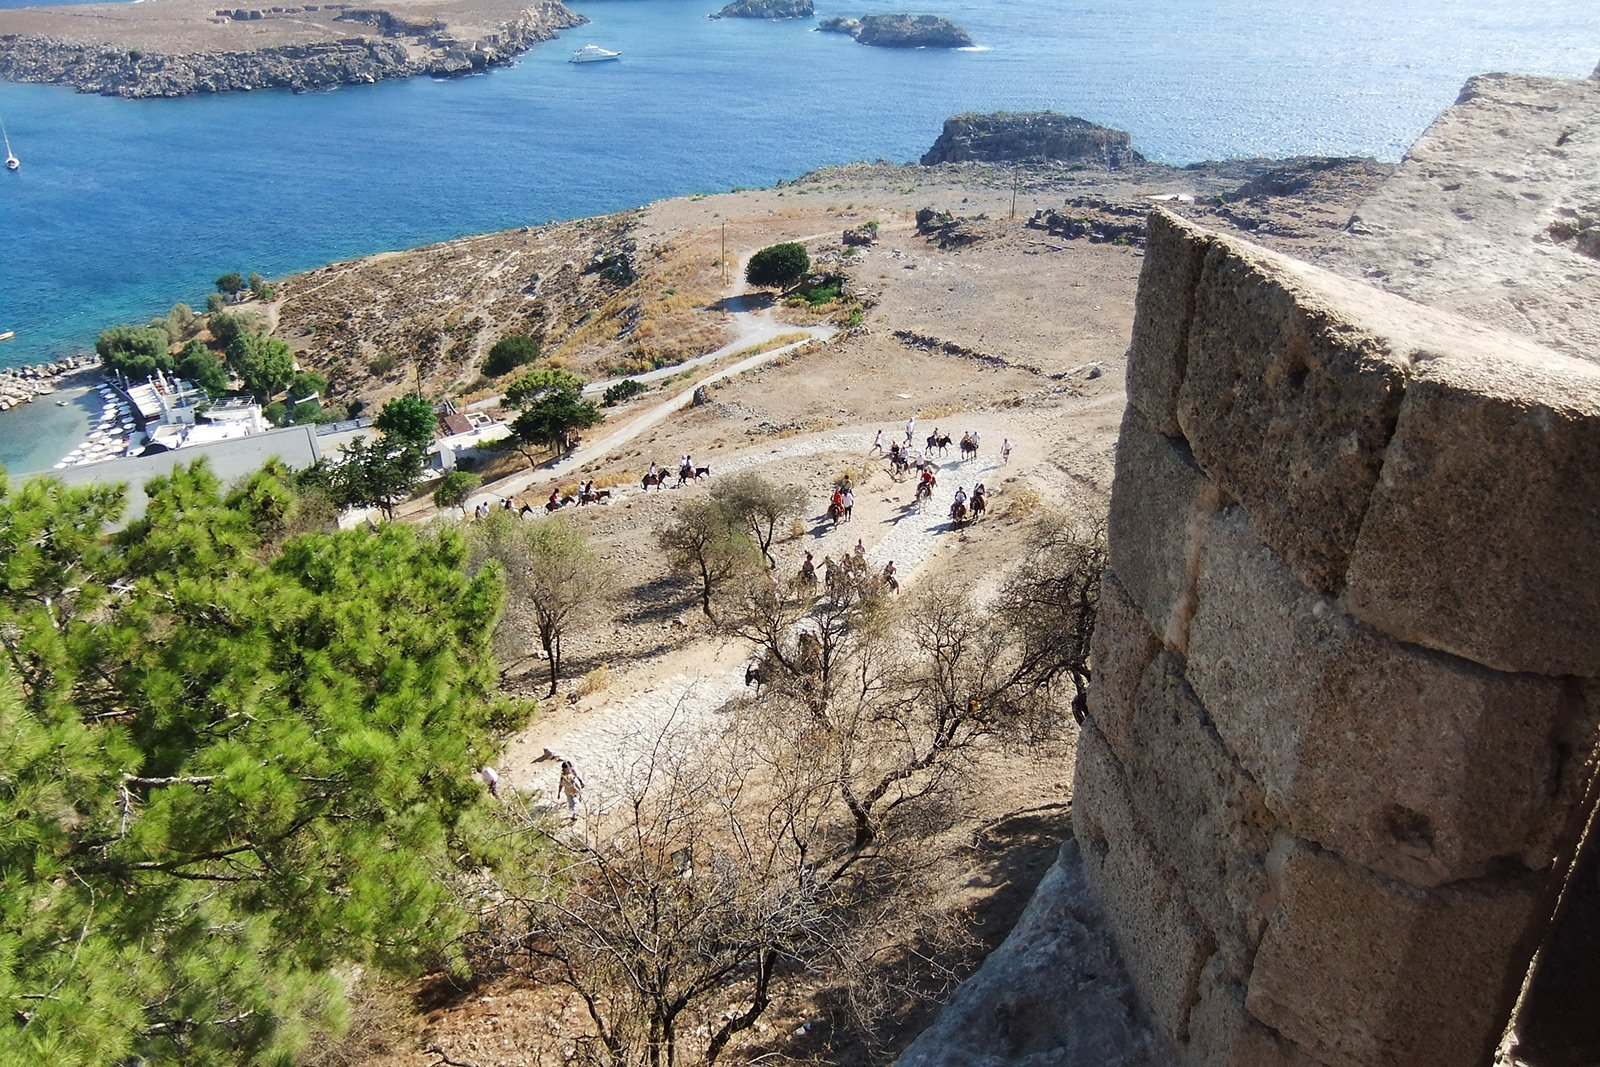 How to see the Acropolis of Lindos on Rhodes